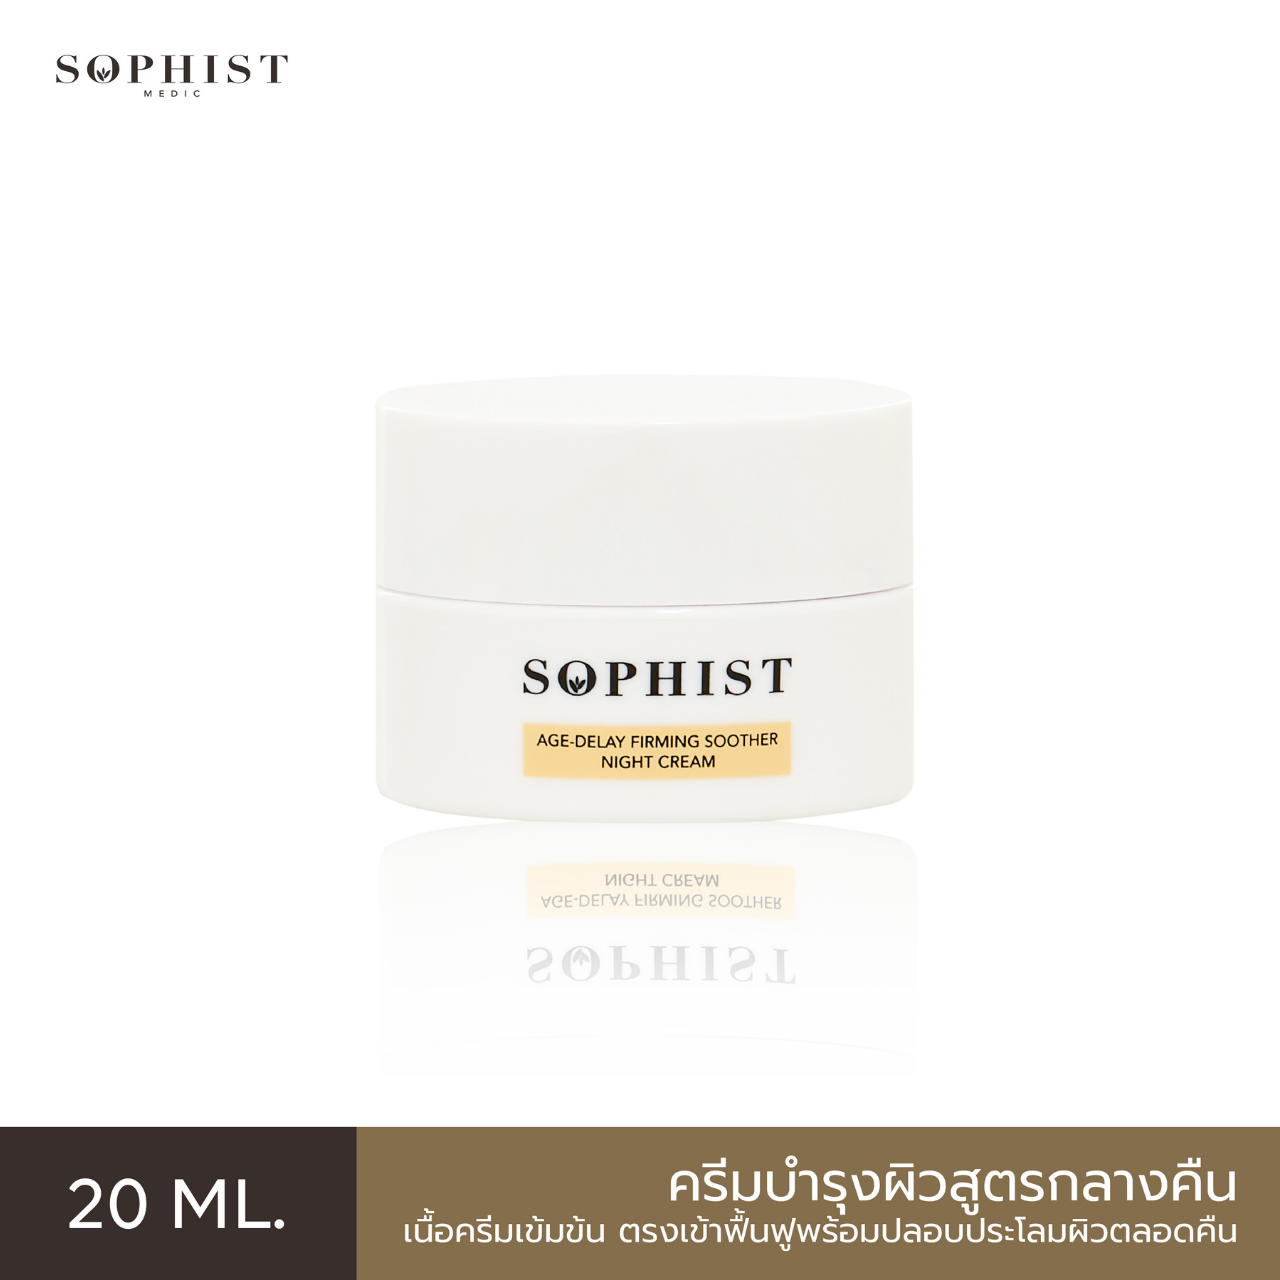 Sophist Age – Delay Firming Soother Night Cream 20 ml.